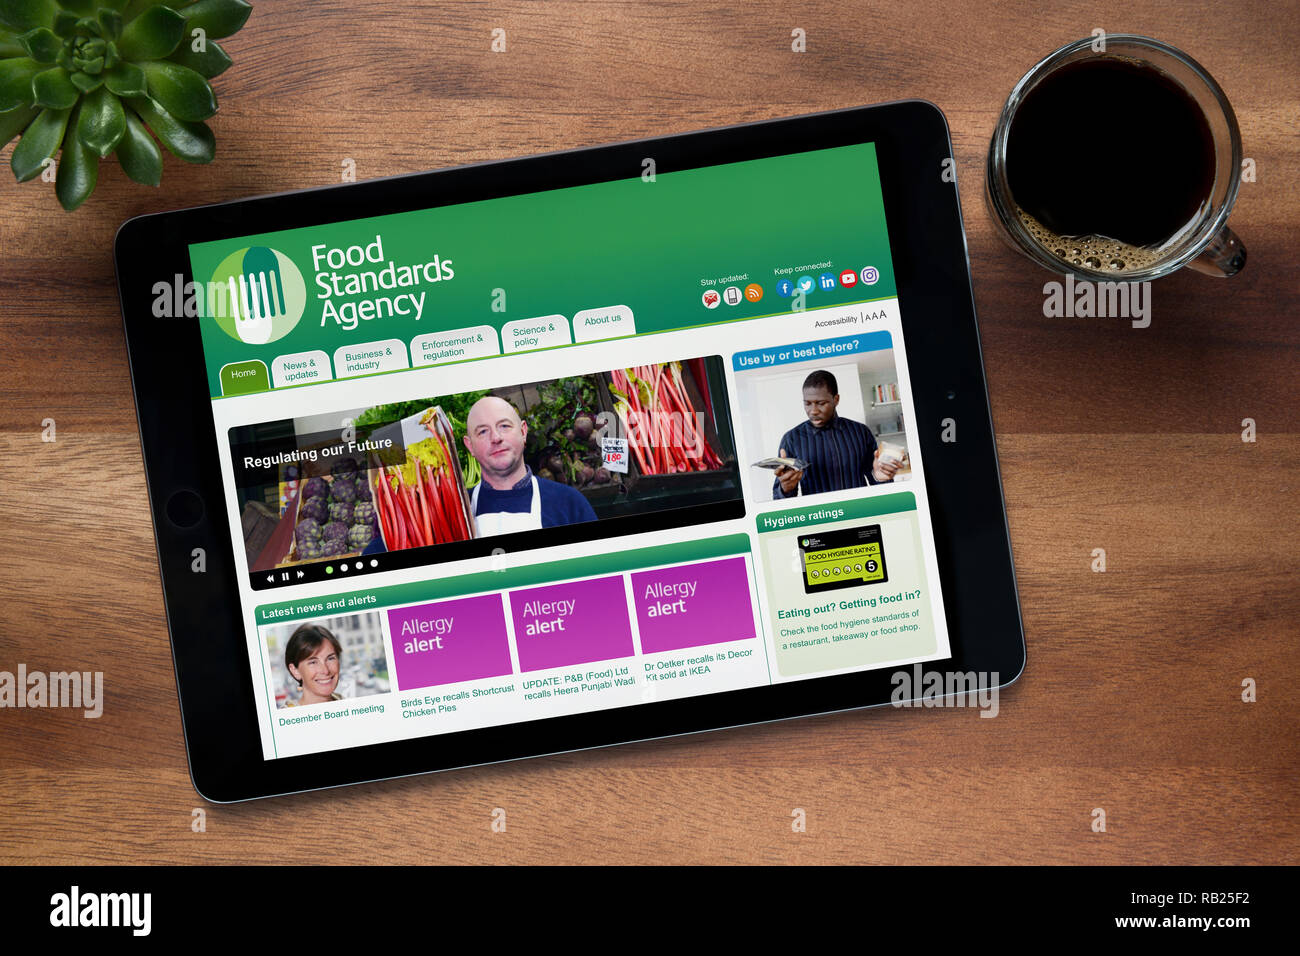 The website of Food Standards Agency is seen on an iPad tablet, on a wooden table along with an espresso coffee and a house plant (Editorial use only) - Stock Image